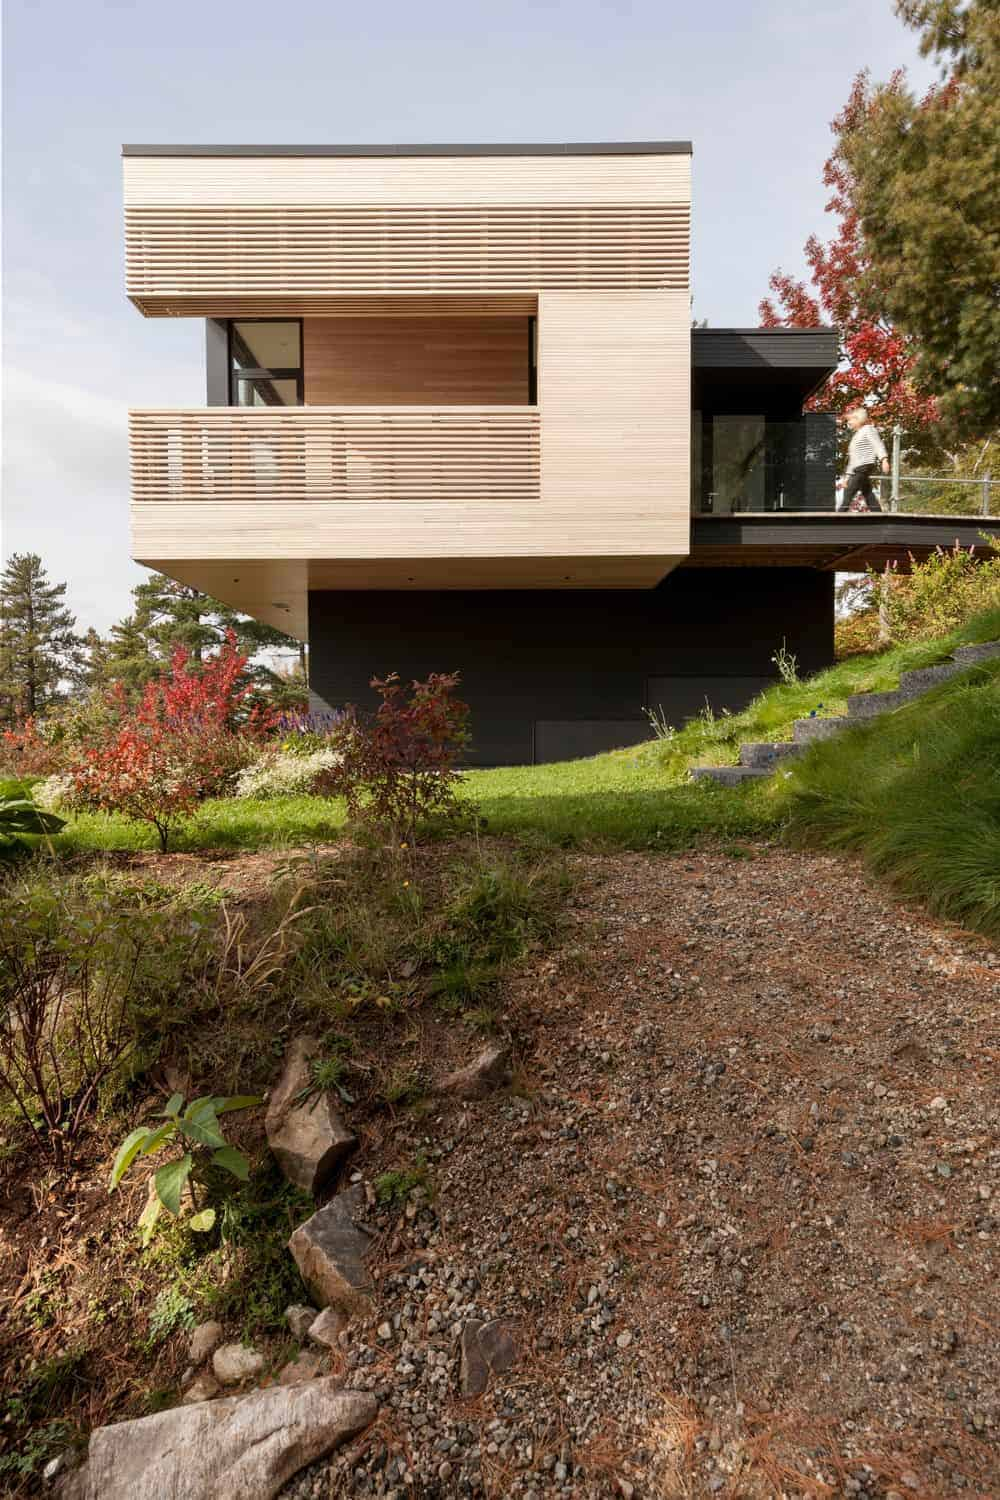 A large modern house with a wooden exterior and offers a nice balcony.